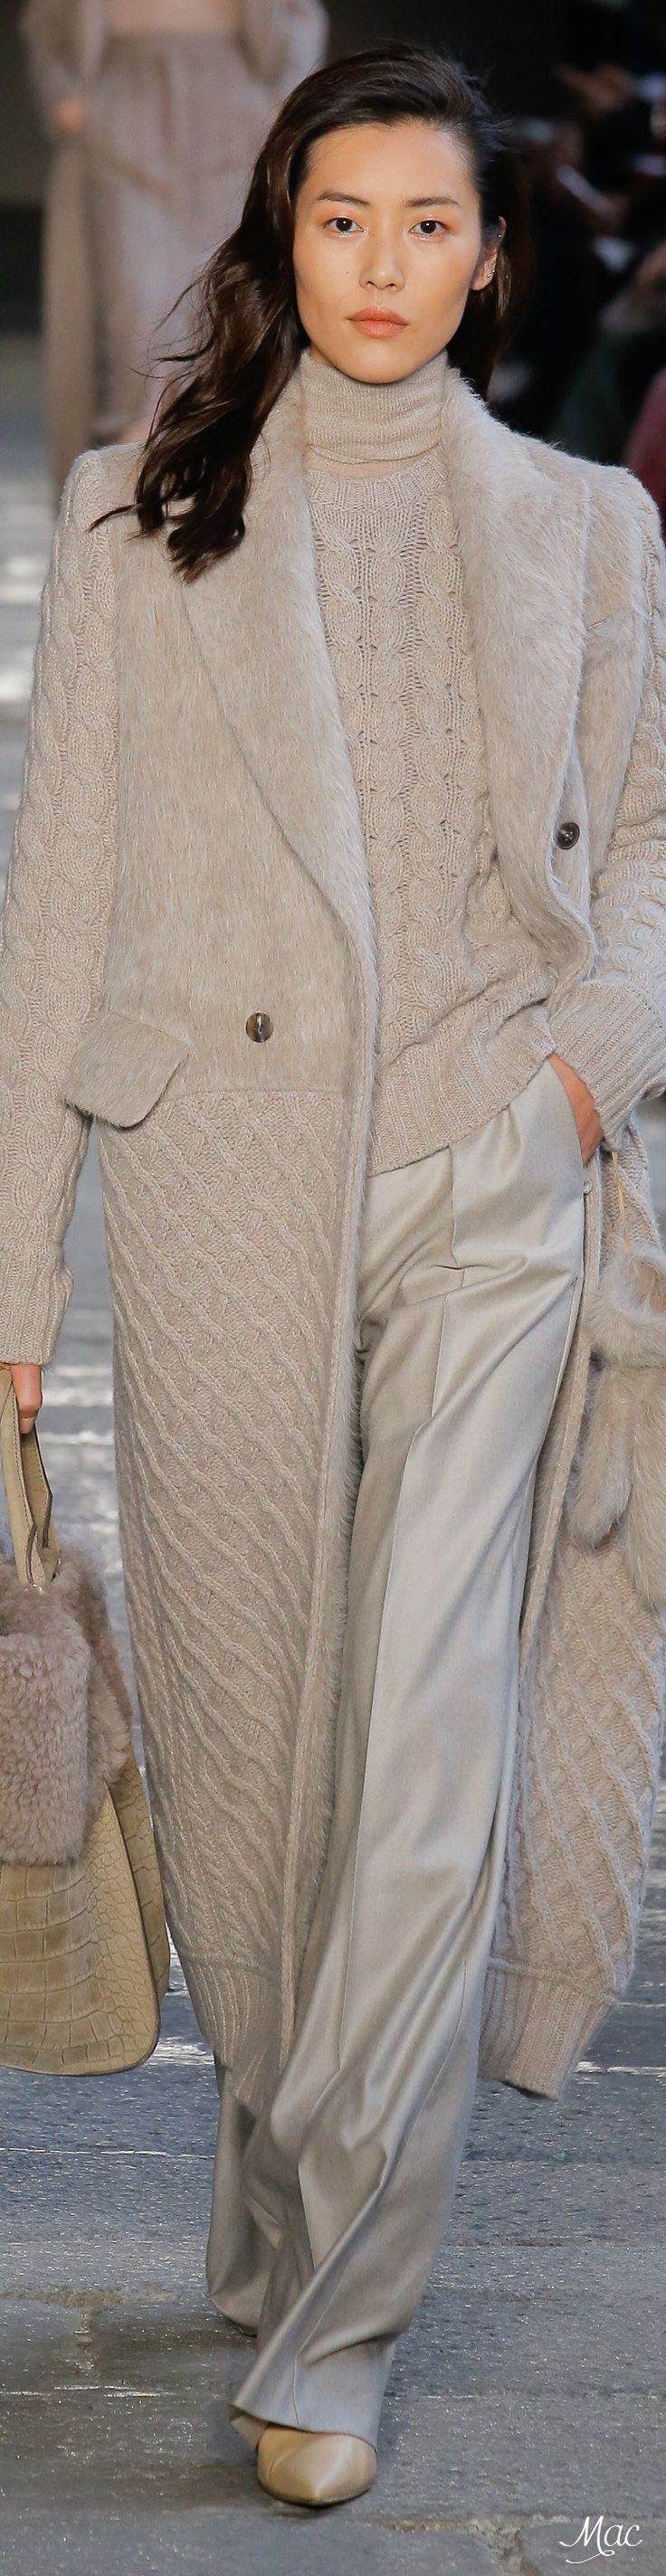 Fall 2017 RTW Max Mara. I have always been a fan of MM coats. If I lived in Europe, I would be at Max Co. all the time. I wish he would bring this chain to the US or let us just purchase on-line!!!!